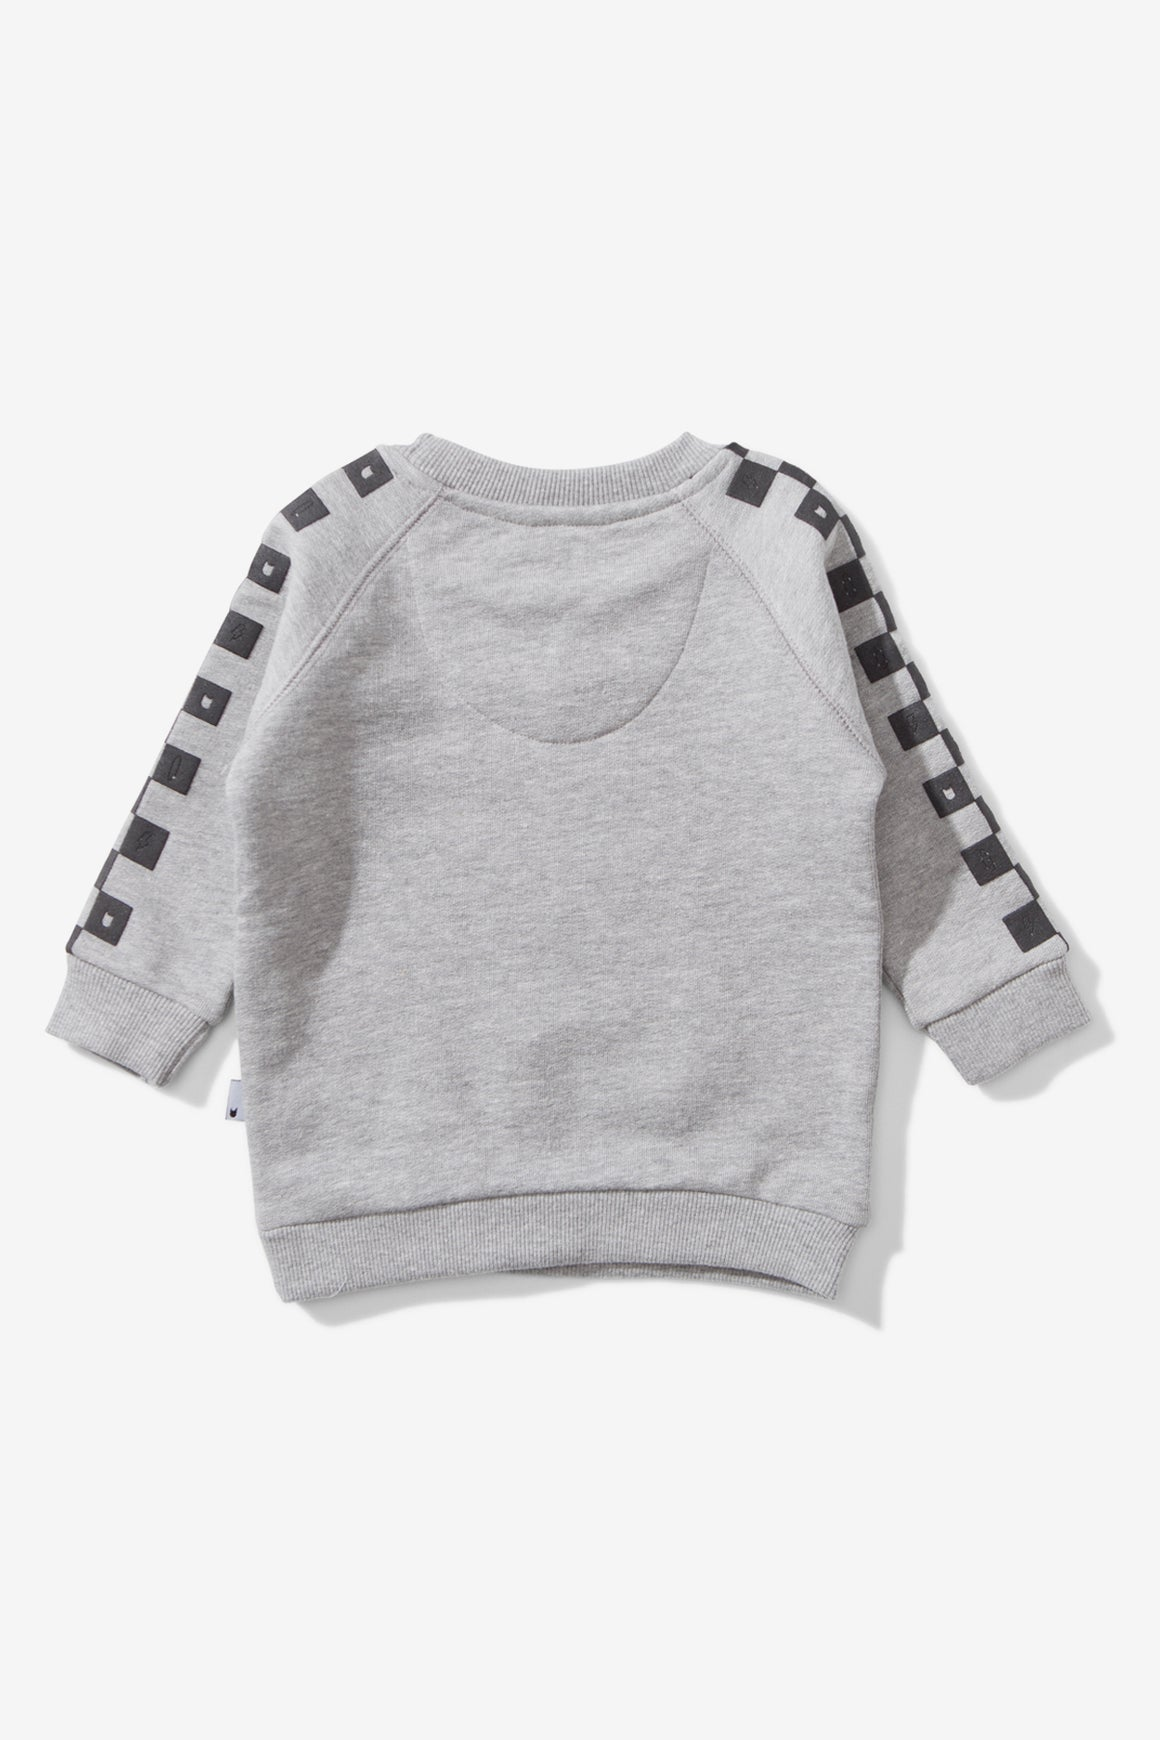 Munster Kids Flagged Baby Sweatshirt